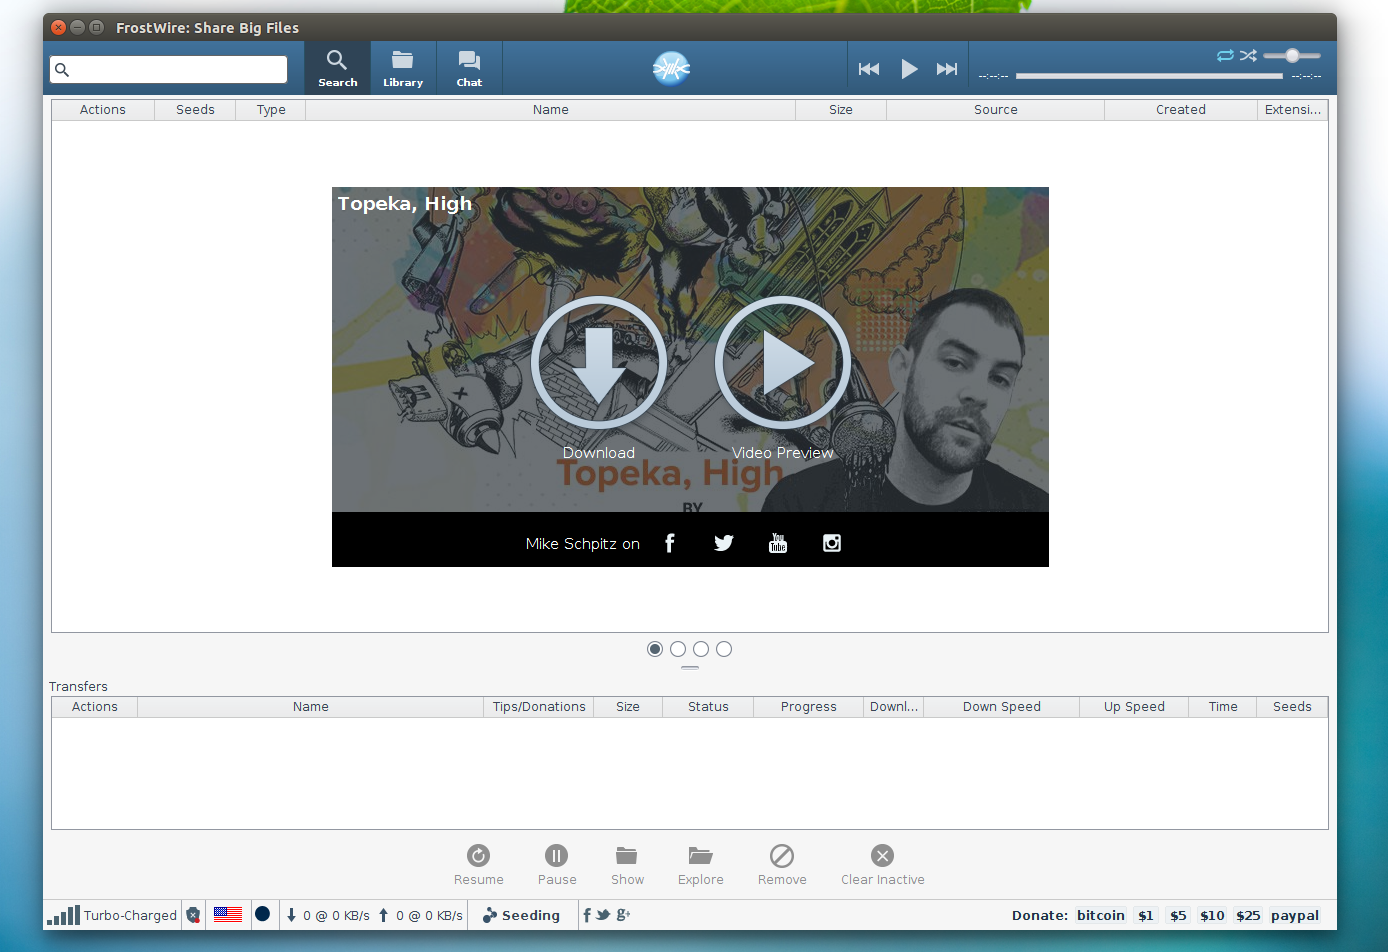 Download Torrents And YouTube Videos With FrostWire ~ Web